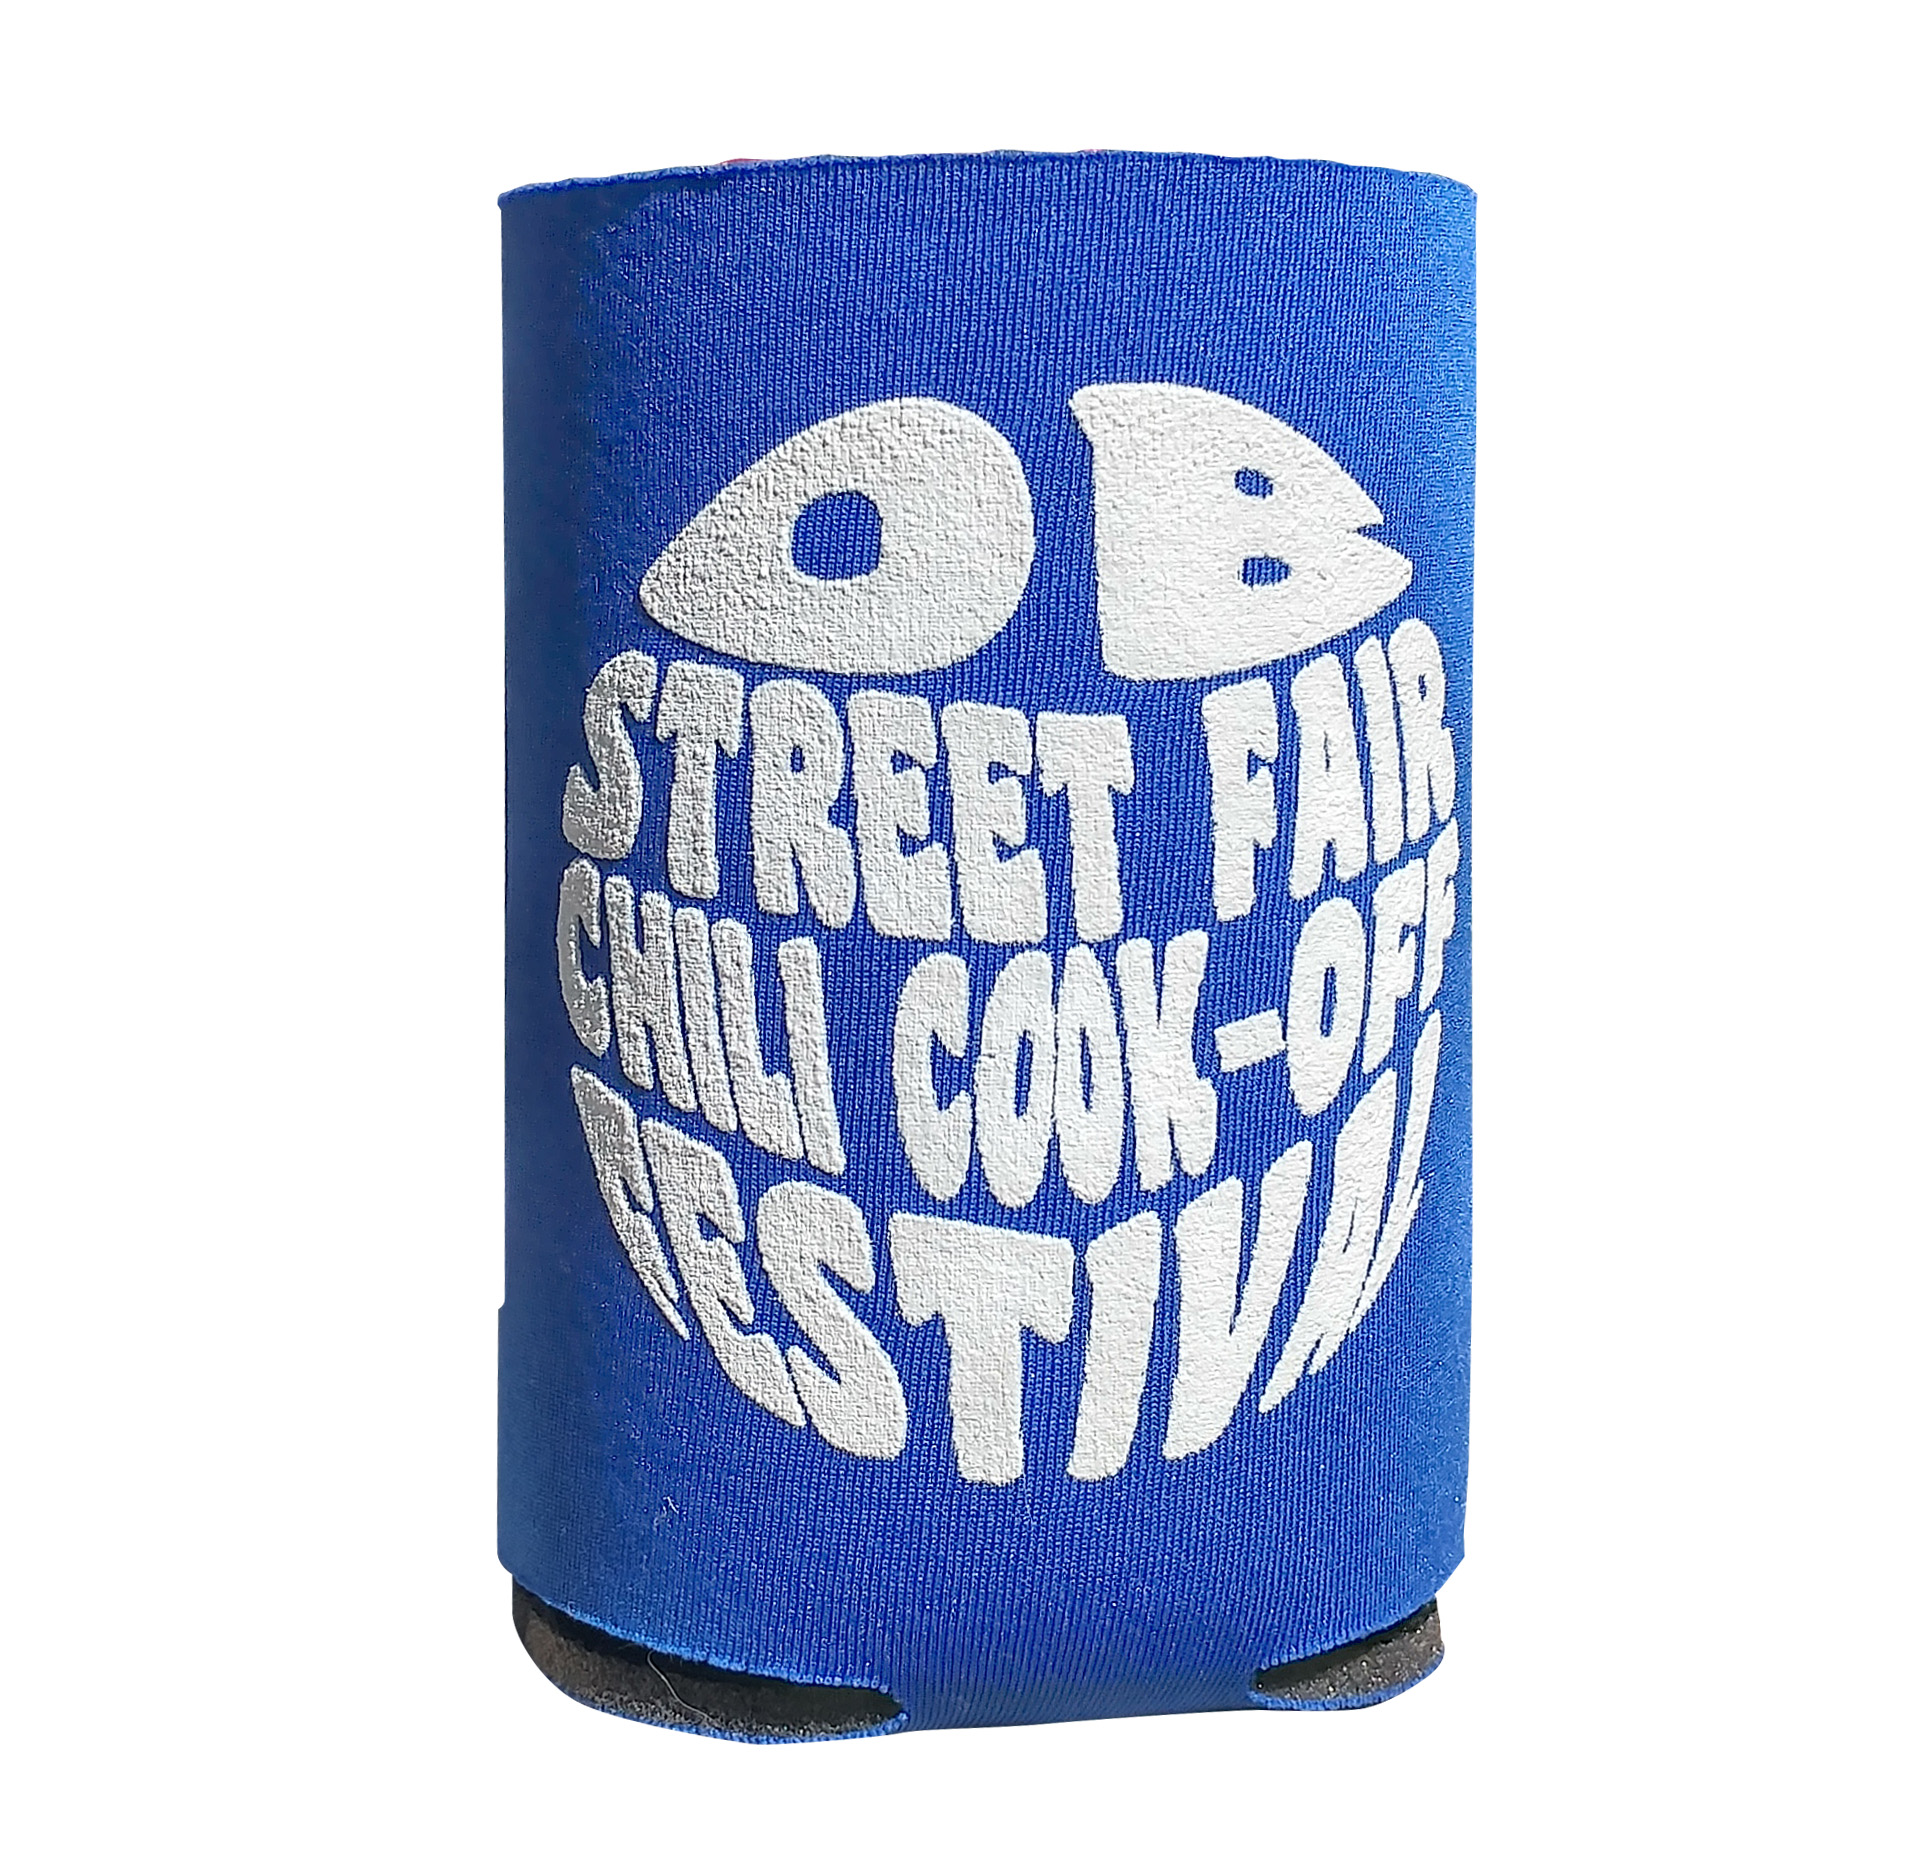 Ocean Beach Product: OB Street Fair & Chili Cook-Off Koozie